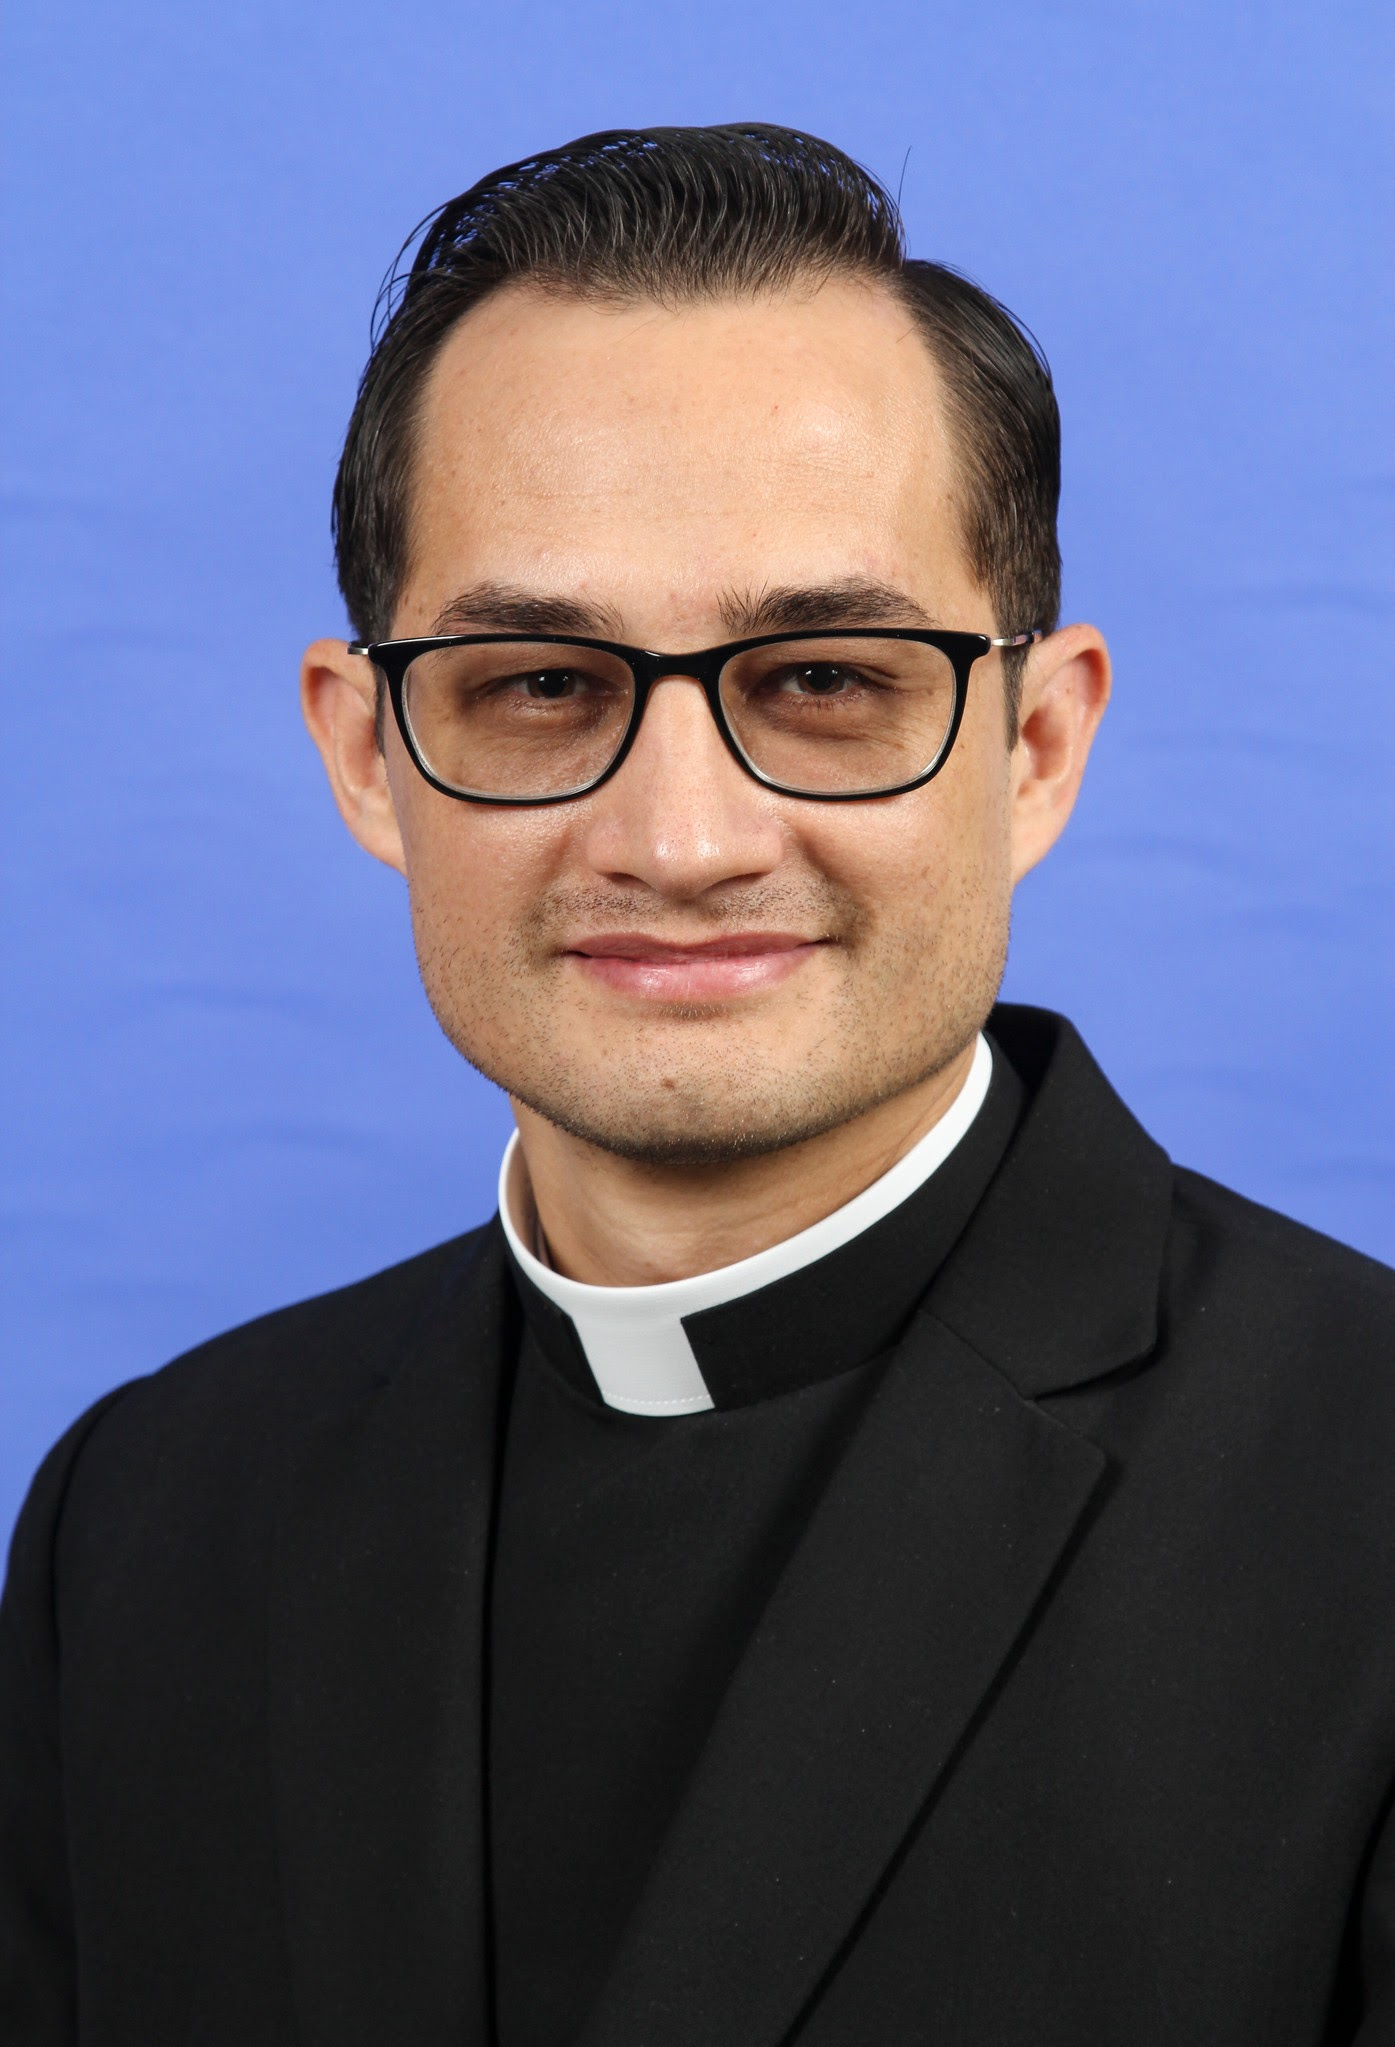 WELCOME FATHER MILLER GOMEZ